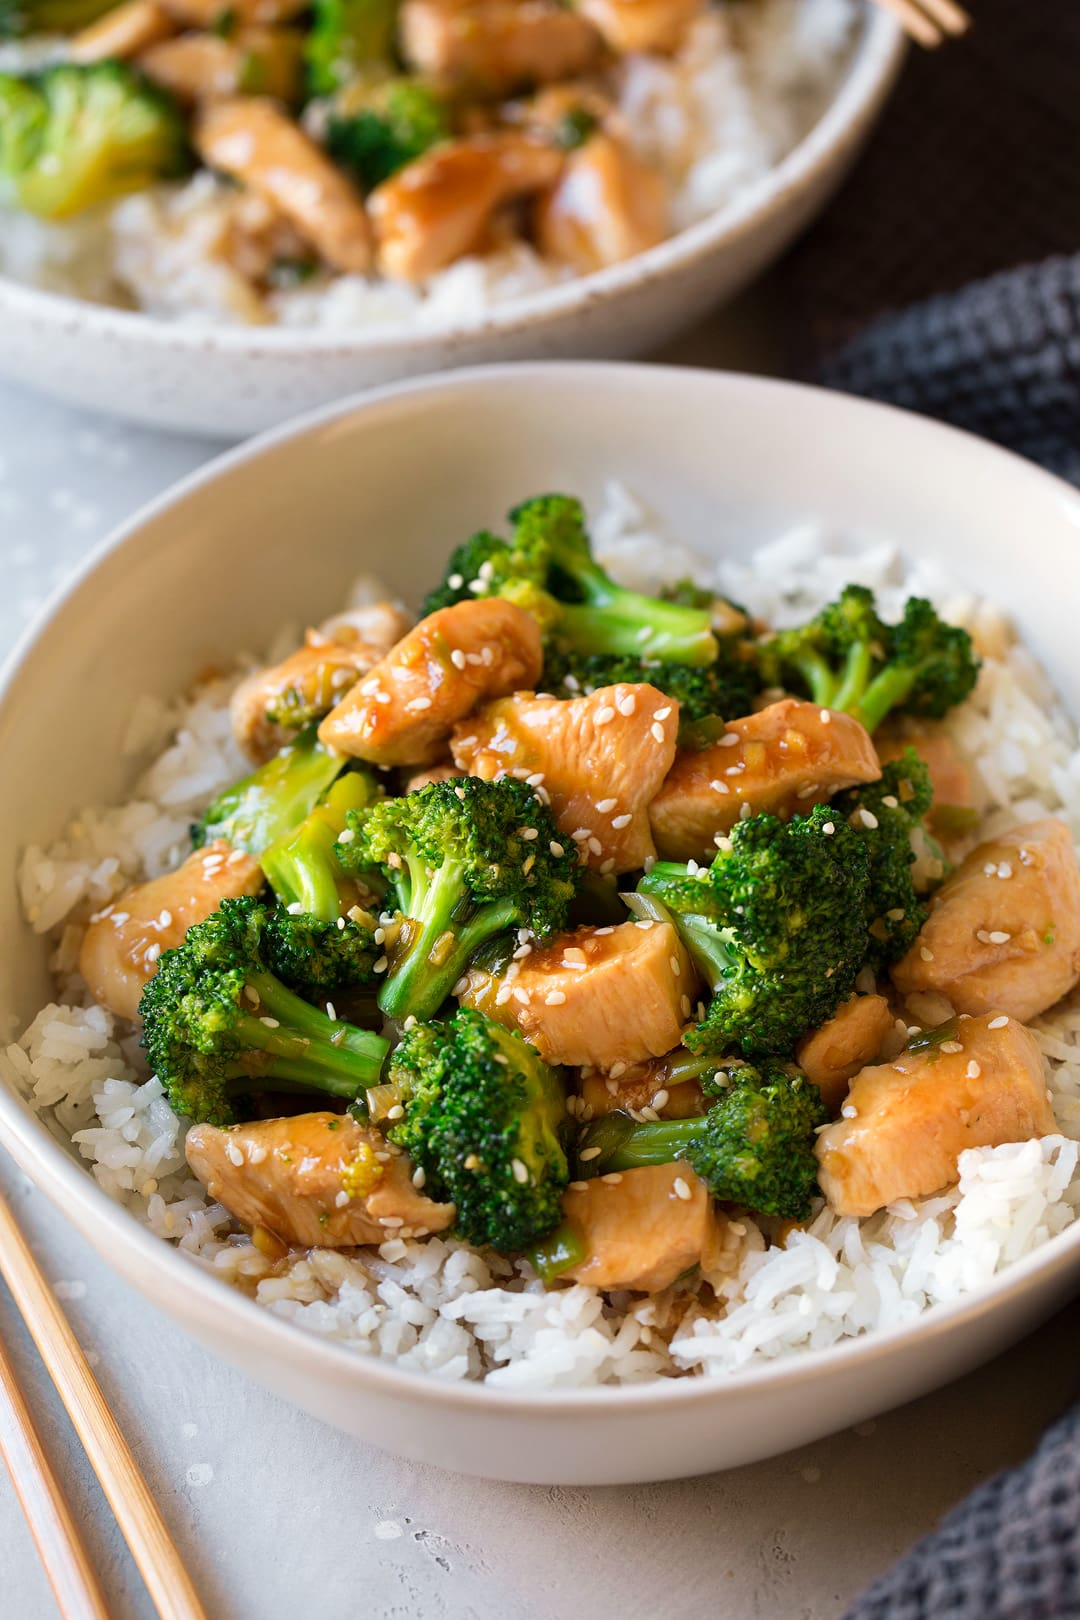 Chinese Chicken And Broccoli Stir-Fry Healthy  Easy - Cooking Classy-6910